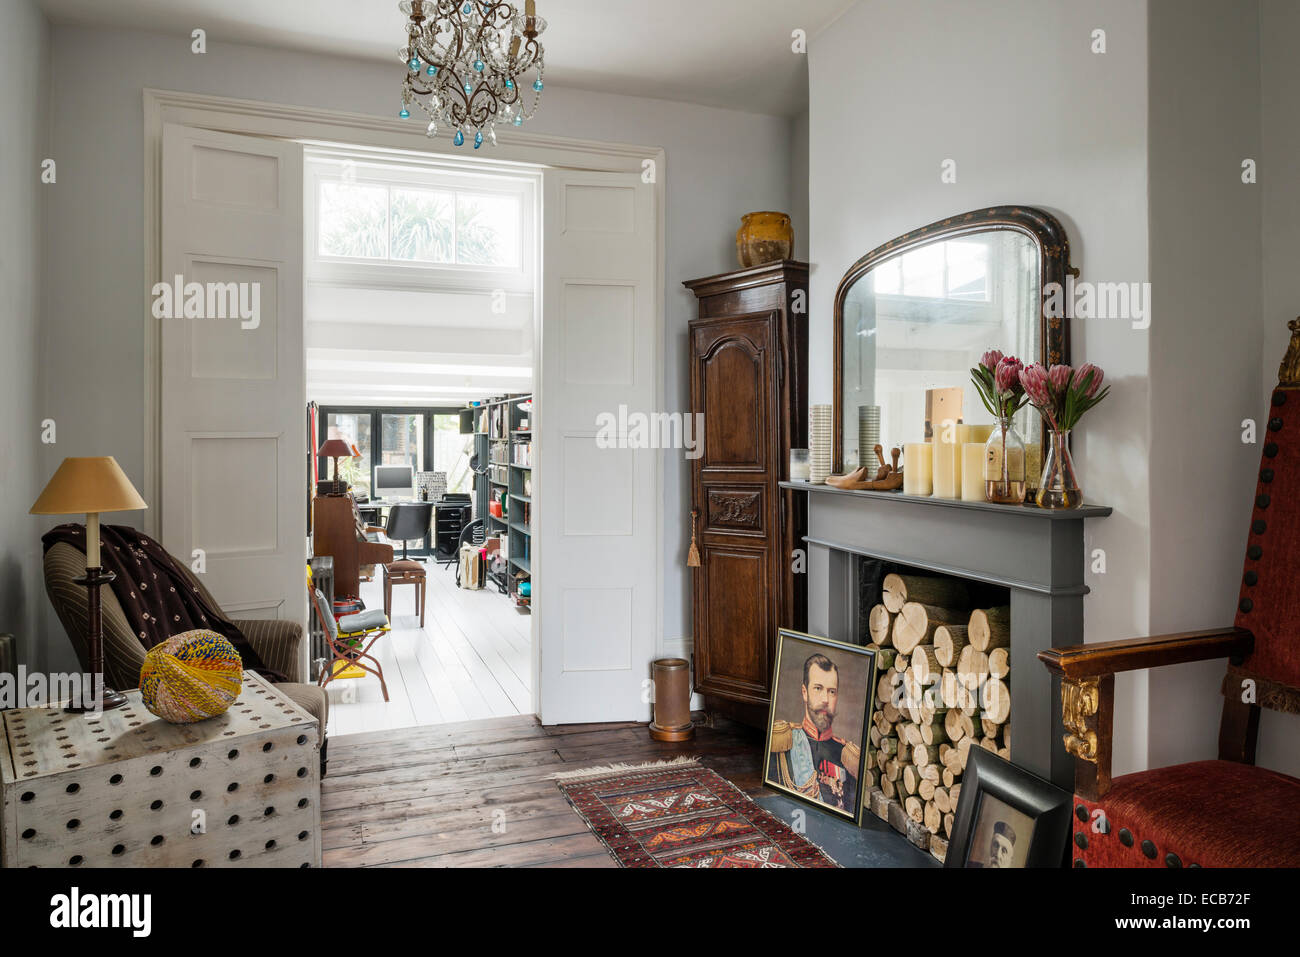 Wooden side table by Selina van der Geest in living room with wooden floors, fireplace and chandelier from Anne - Stock Image